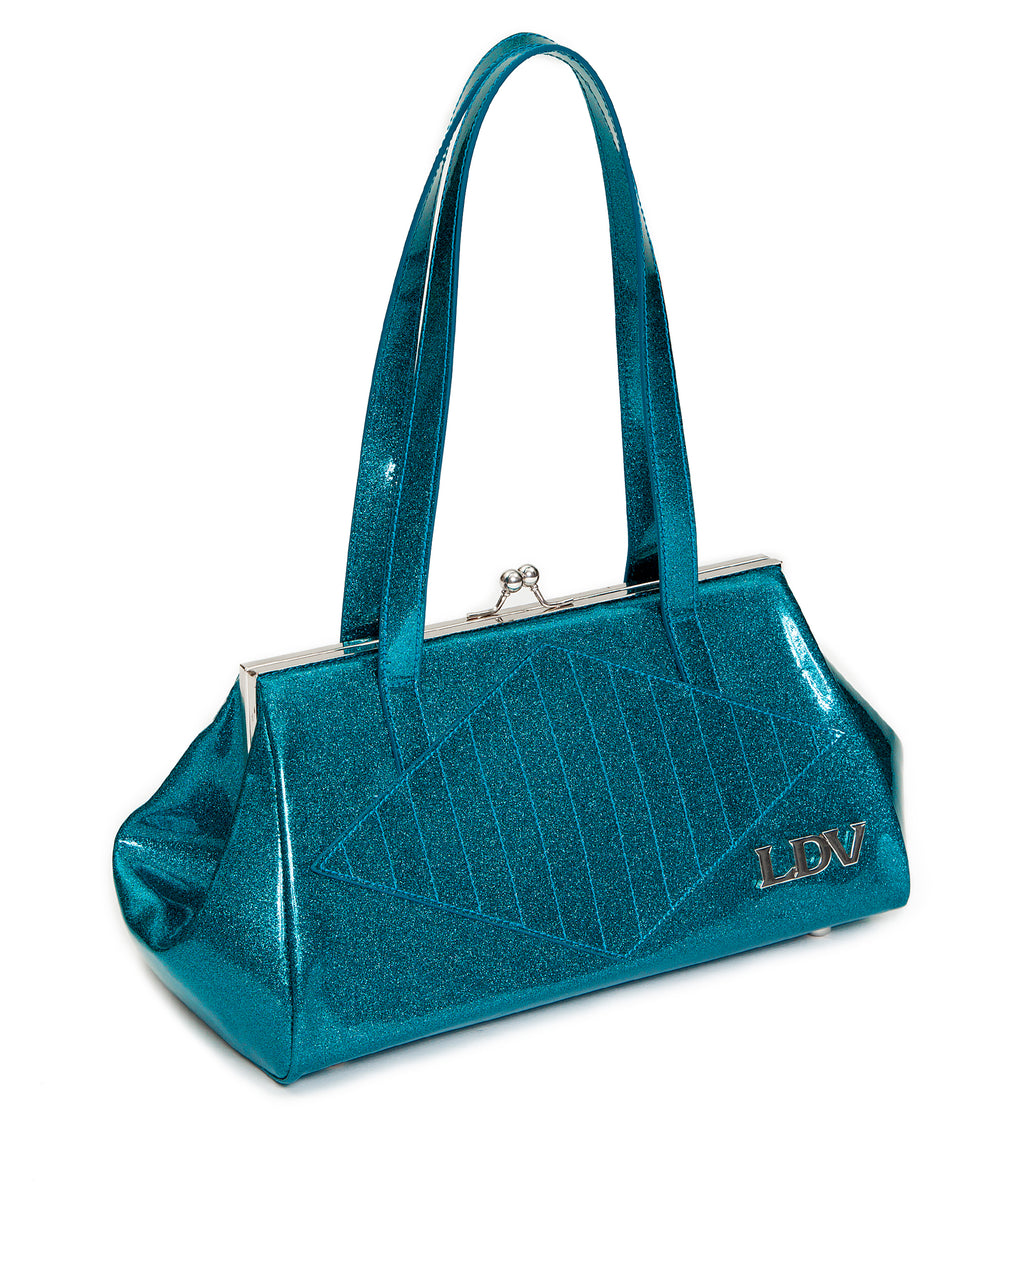 High Roller Handbag Kiss Locks Endless Sea Sparkle - Mini Atomic Totes